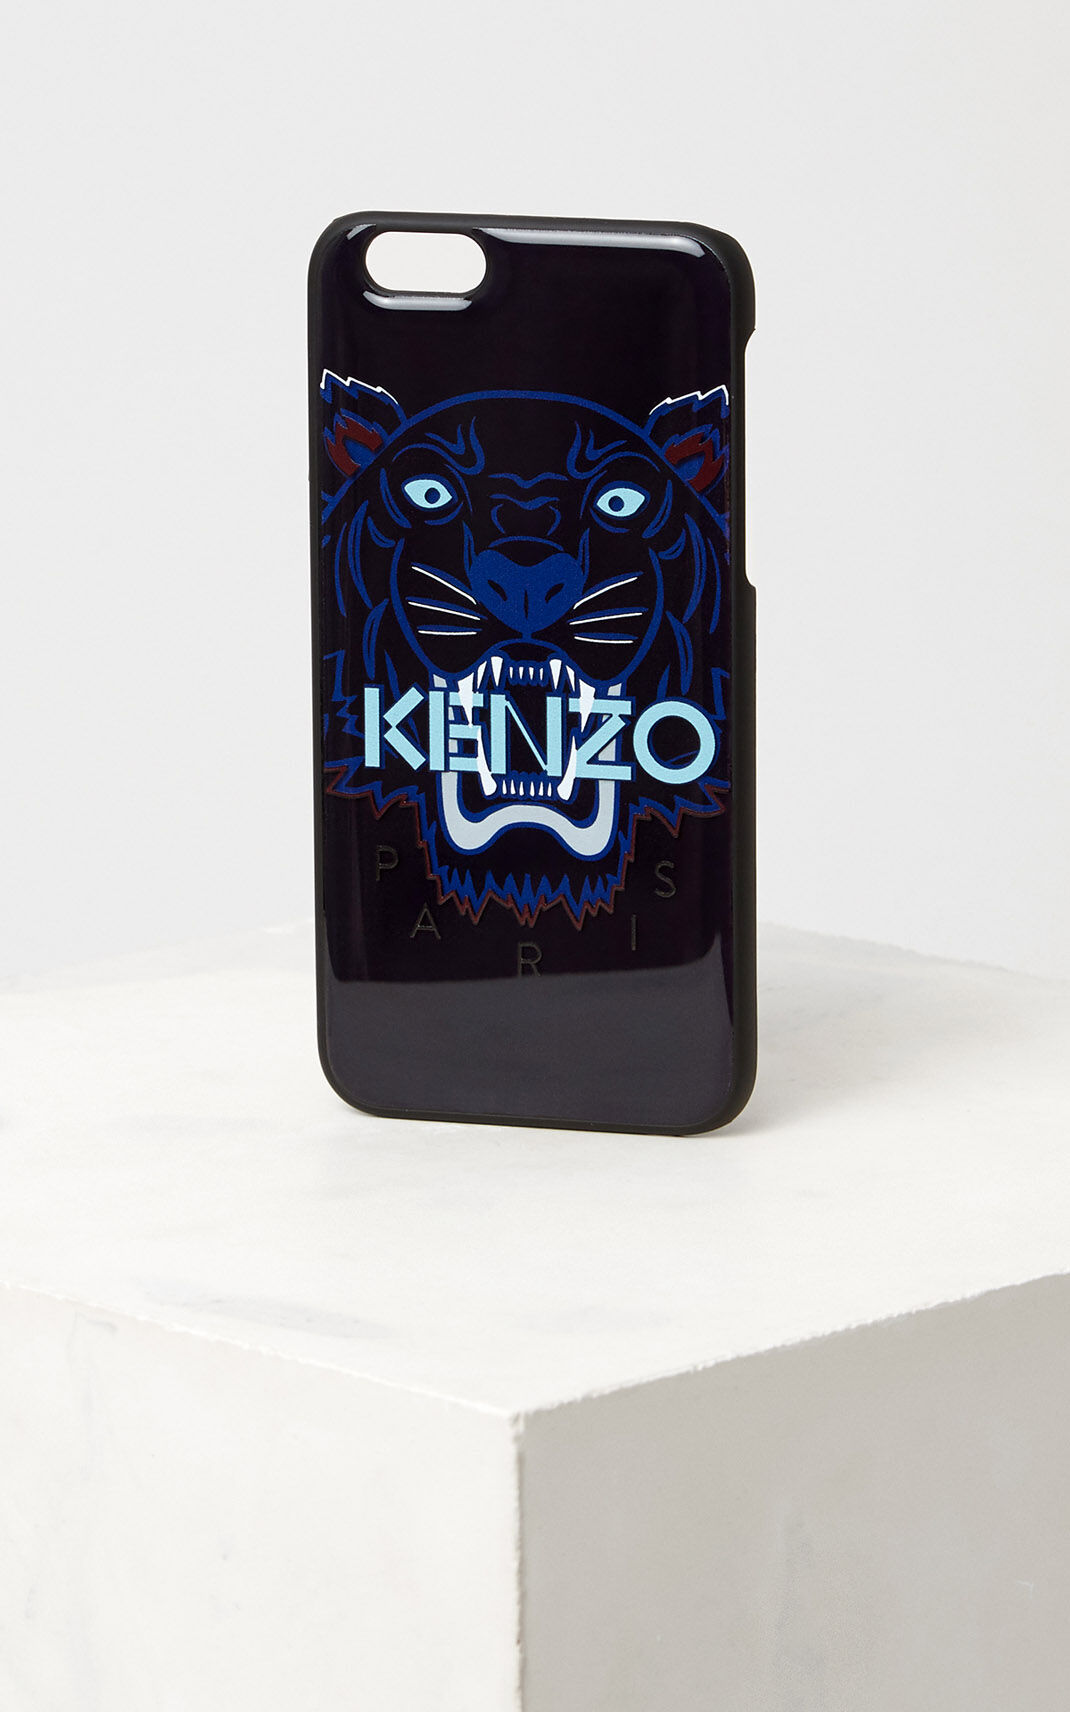 NAVY BLUE Tiger iPhone 6+/6S+  case for unisex KENZO